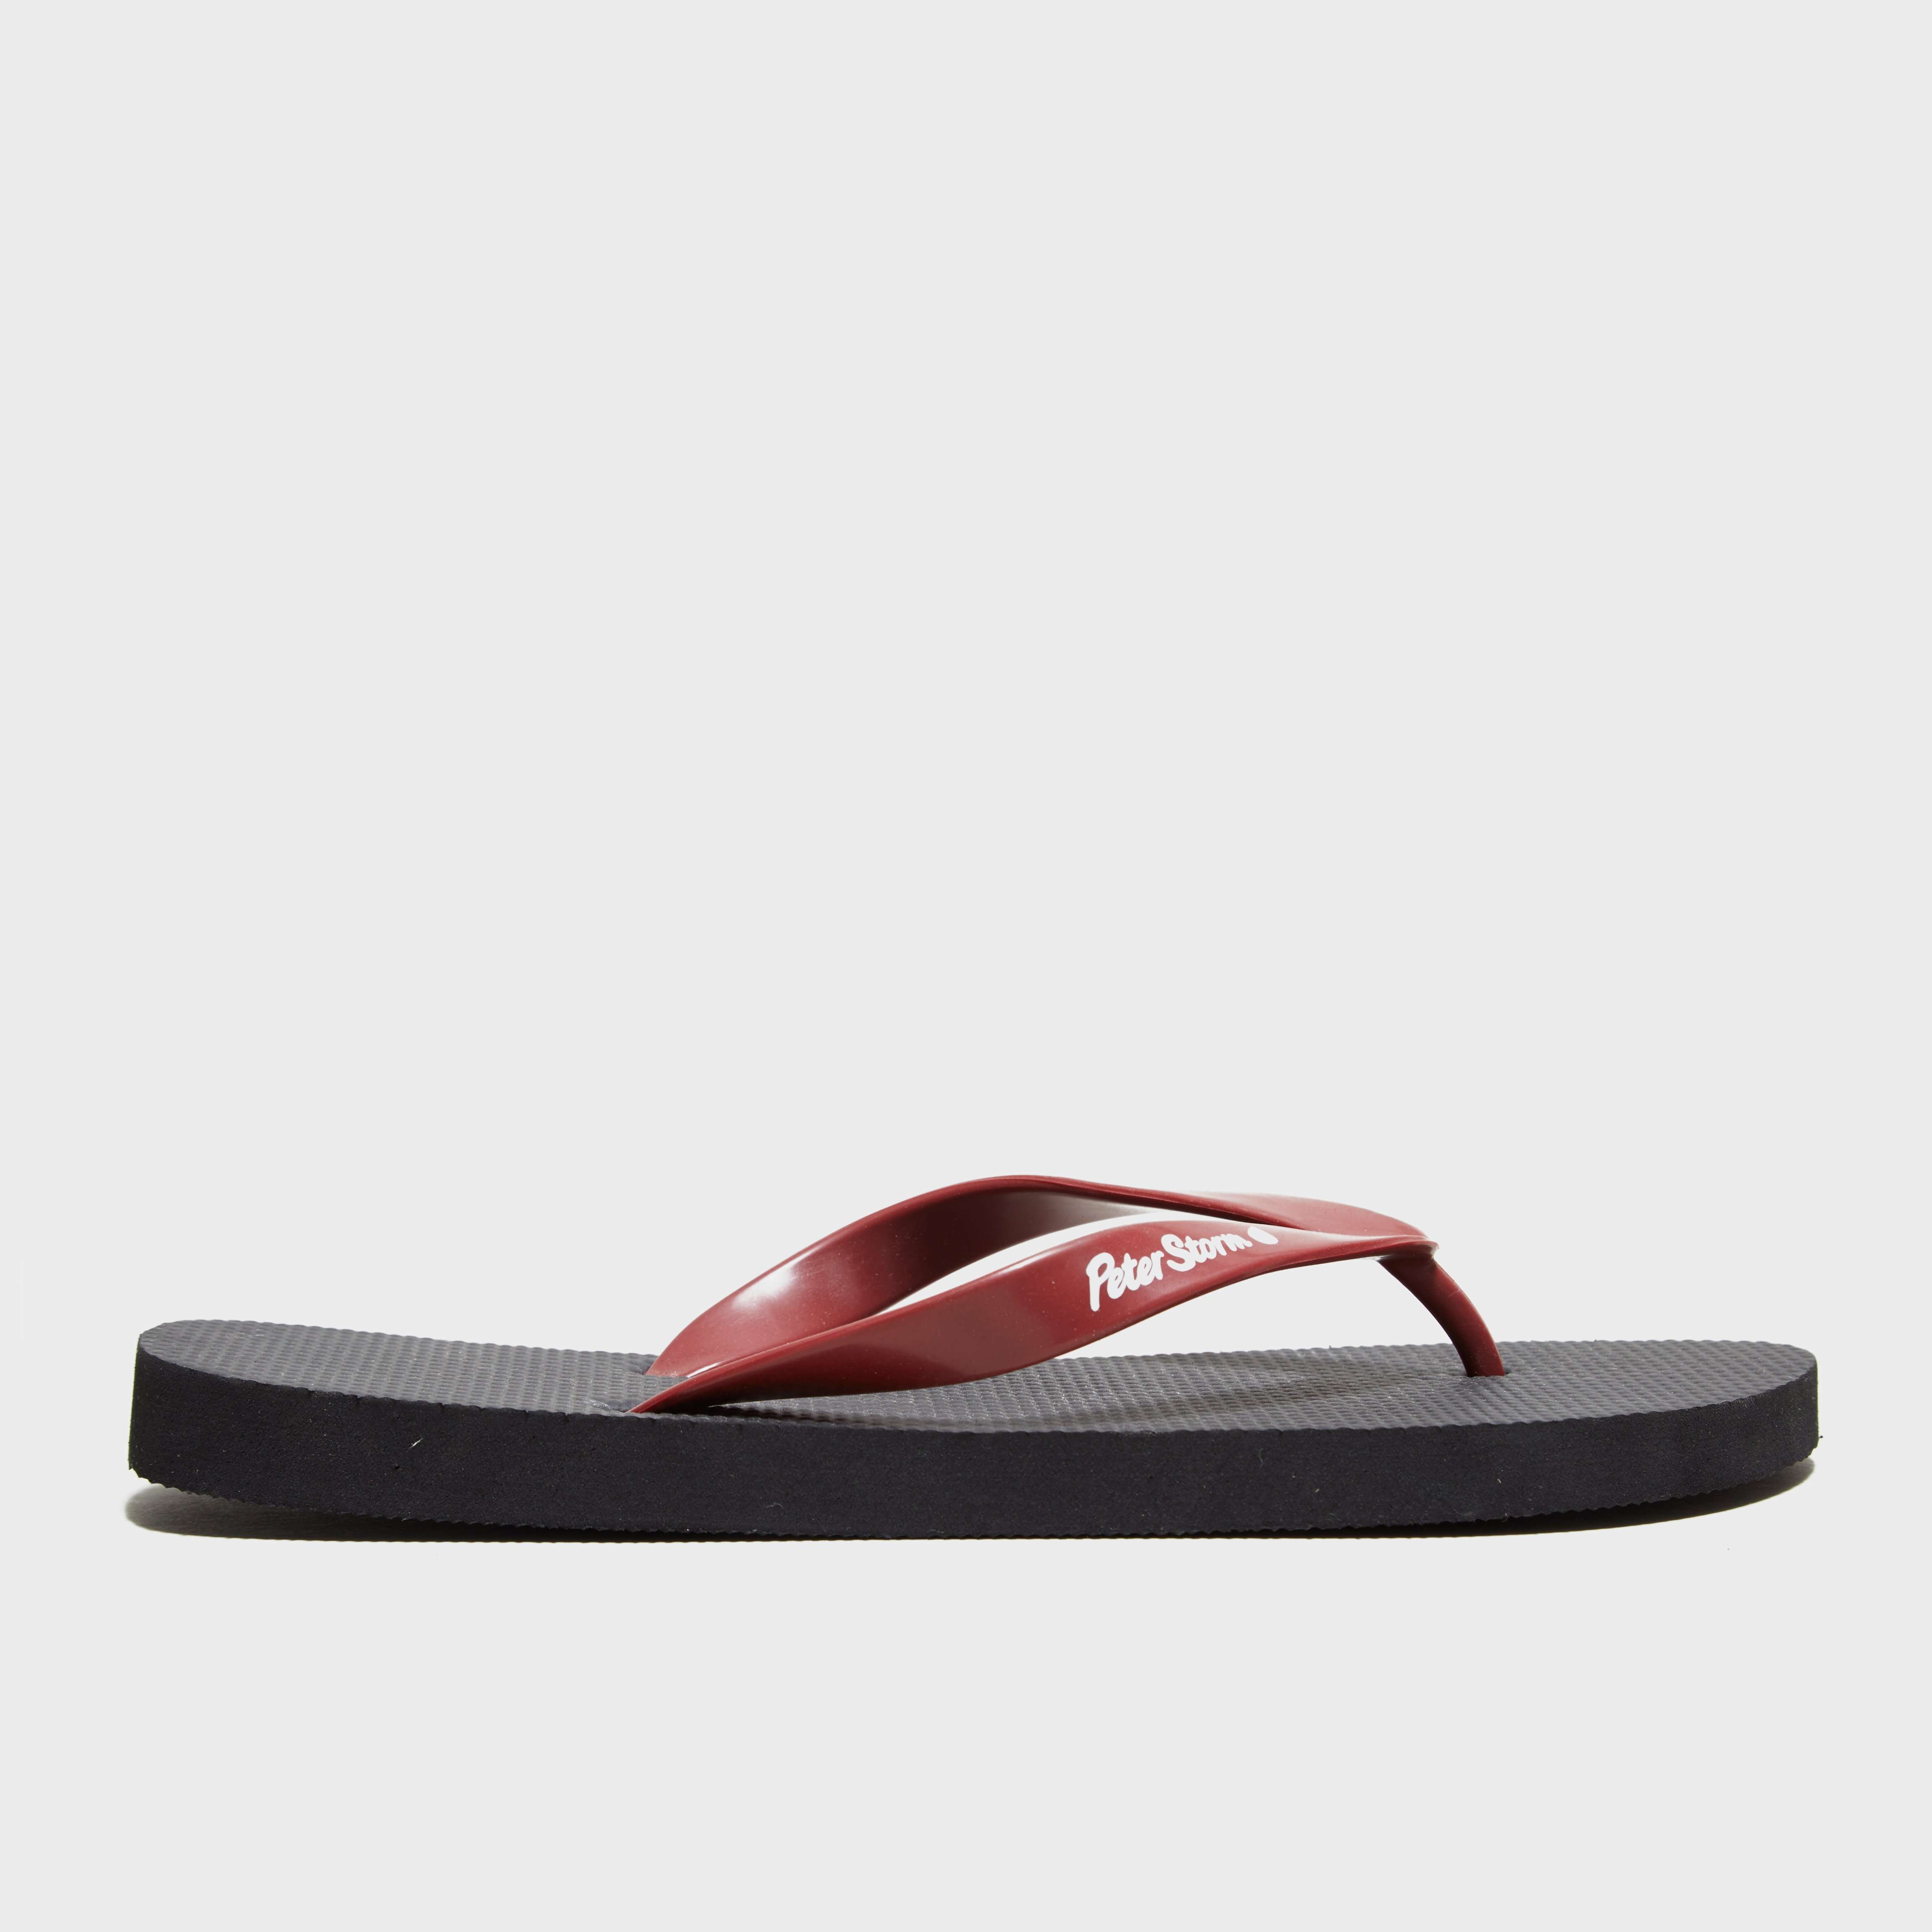 PETER STORM Men's Nero Flip Flops